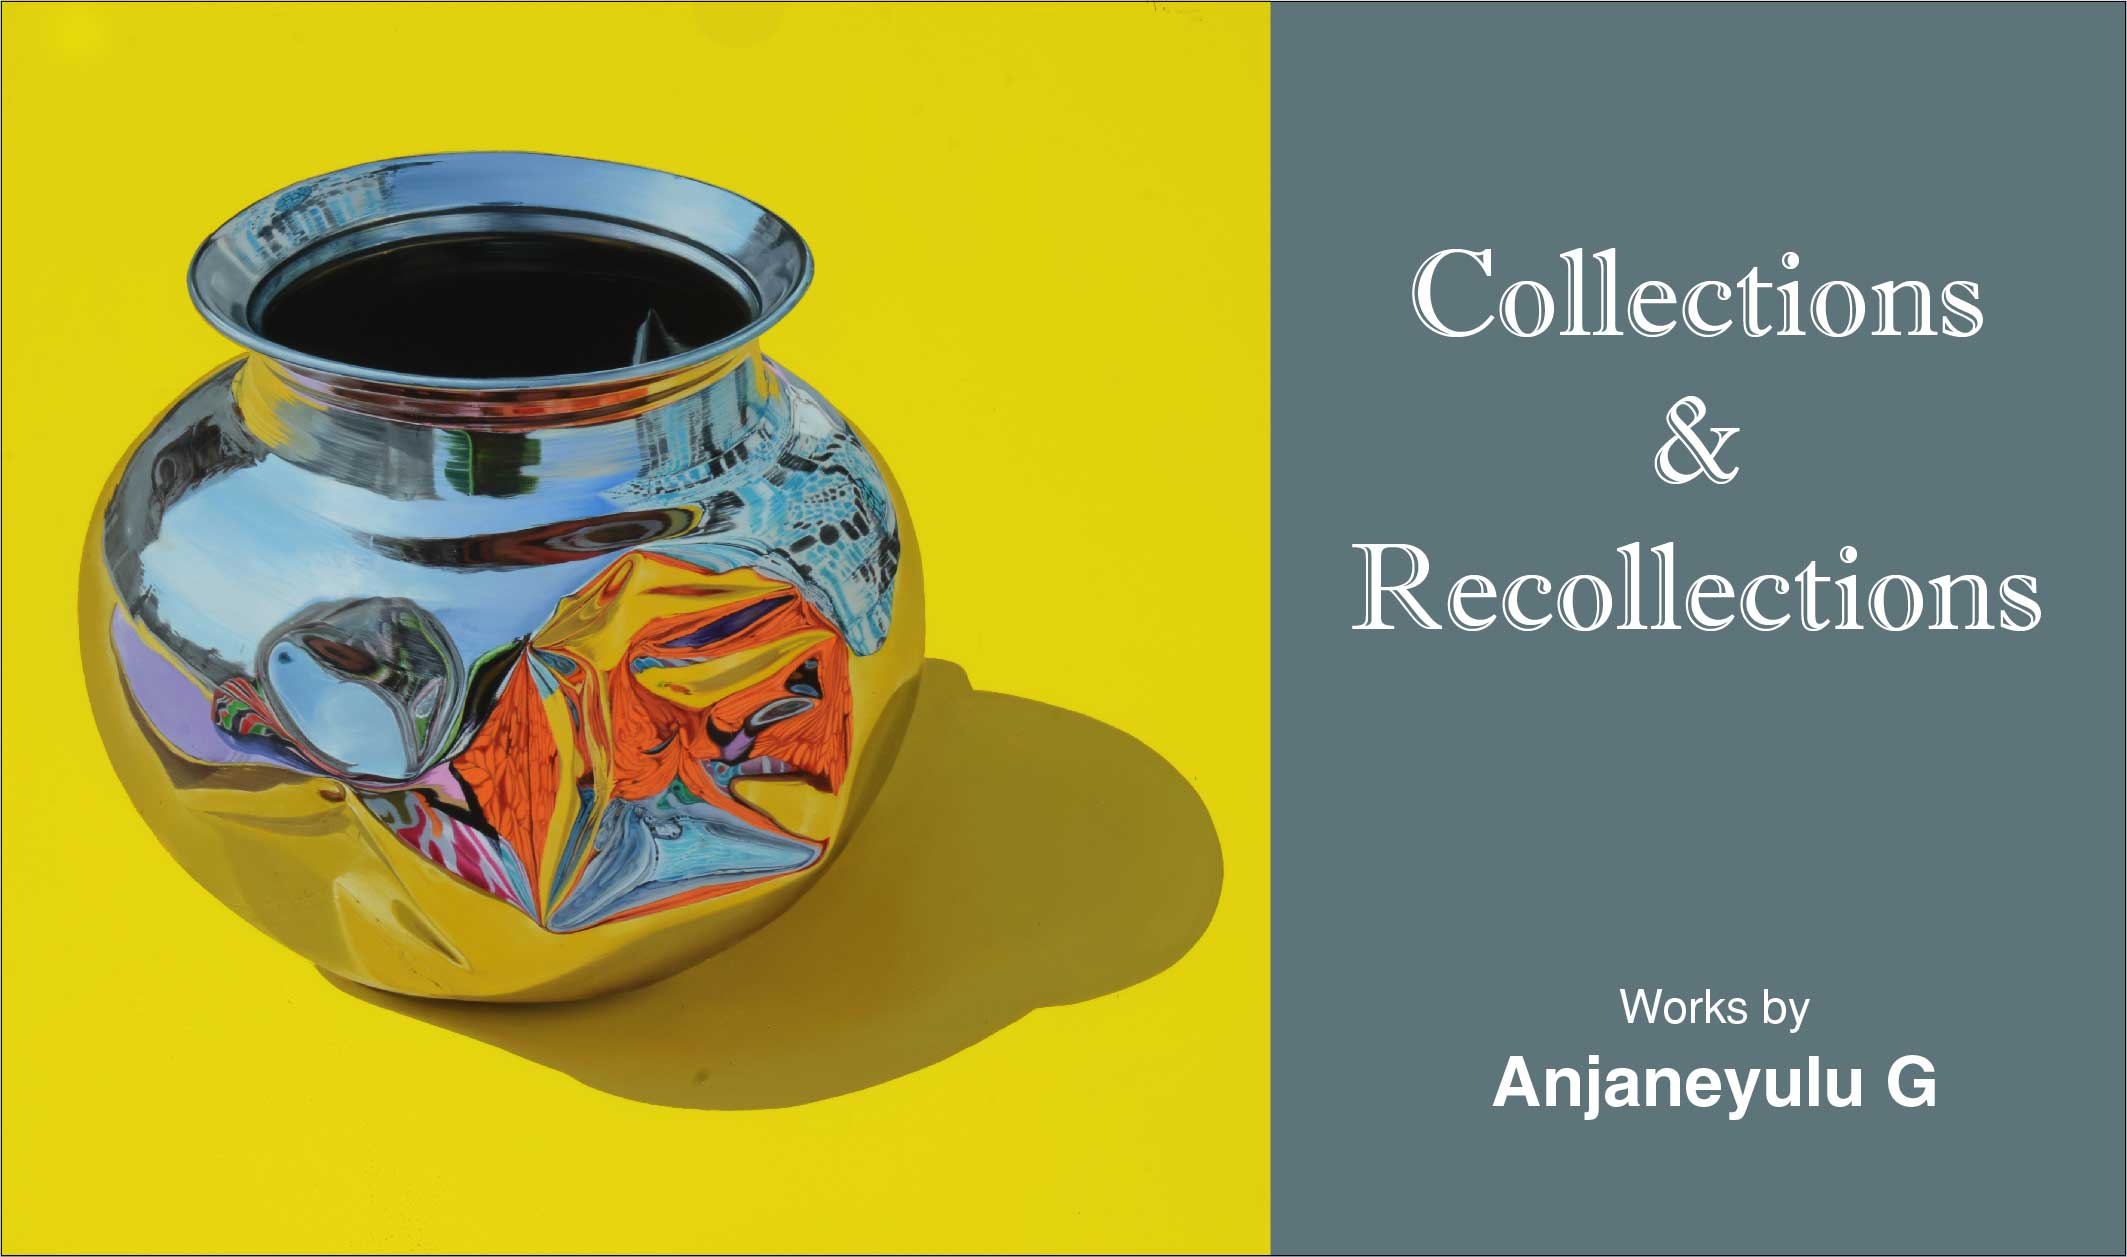 Collections and Recollections | Works by Anjaneyulu G.